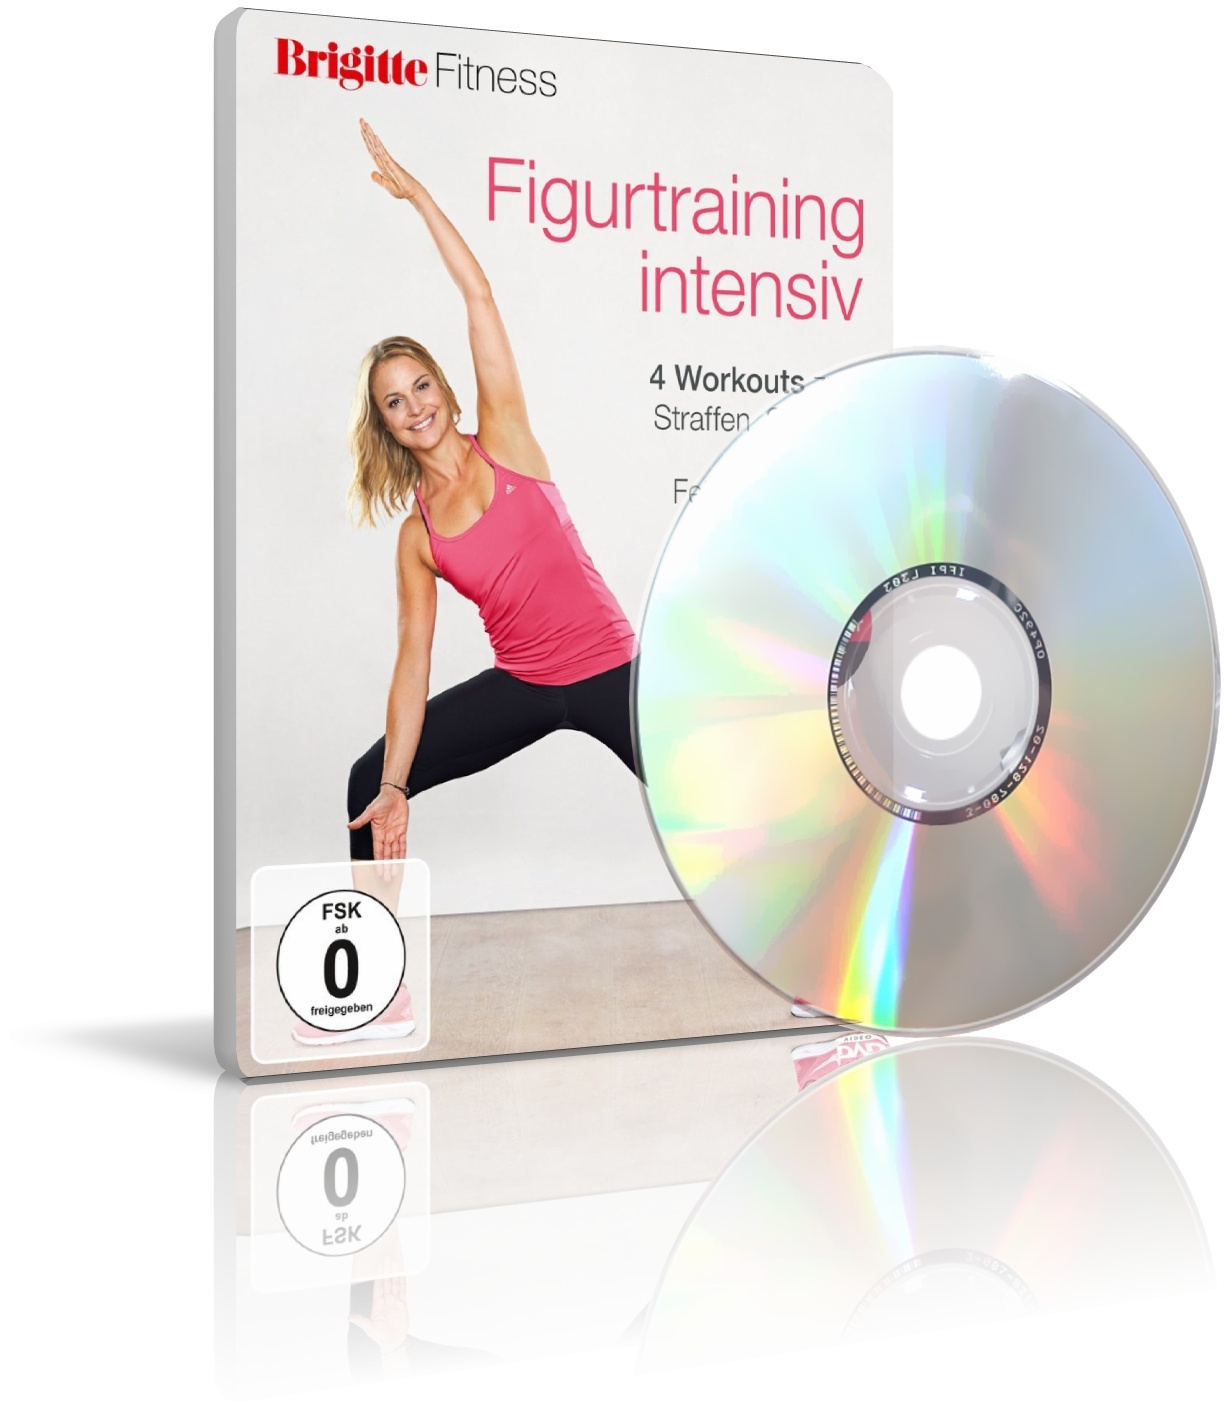 Figurtraining intensiv von Brigitte Fitness (DVD)